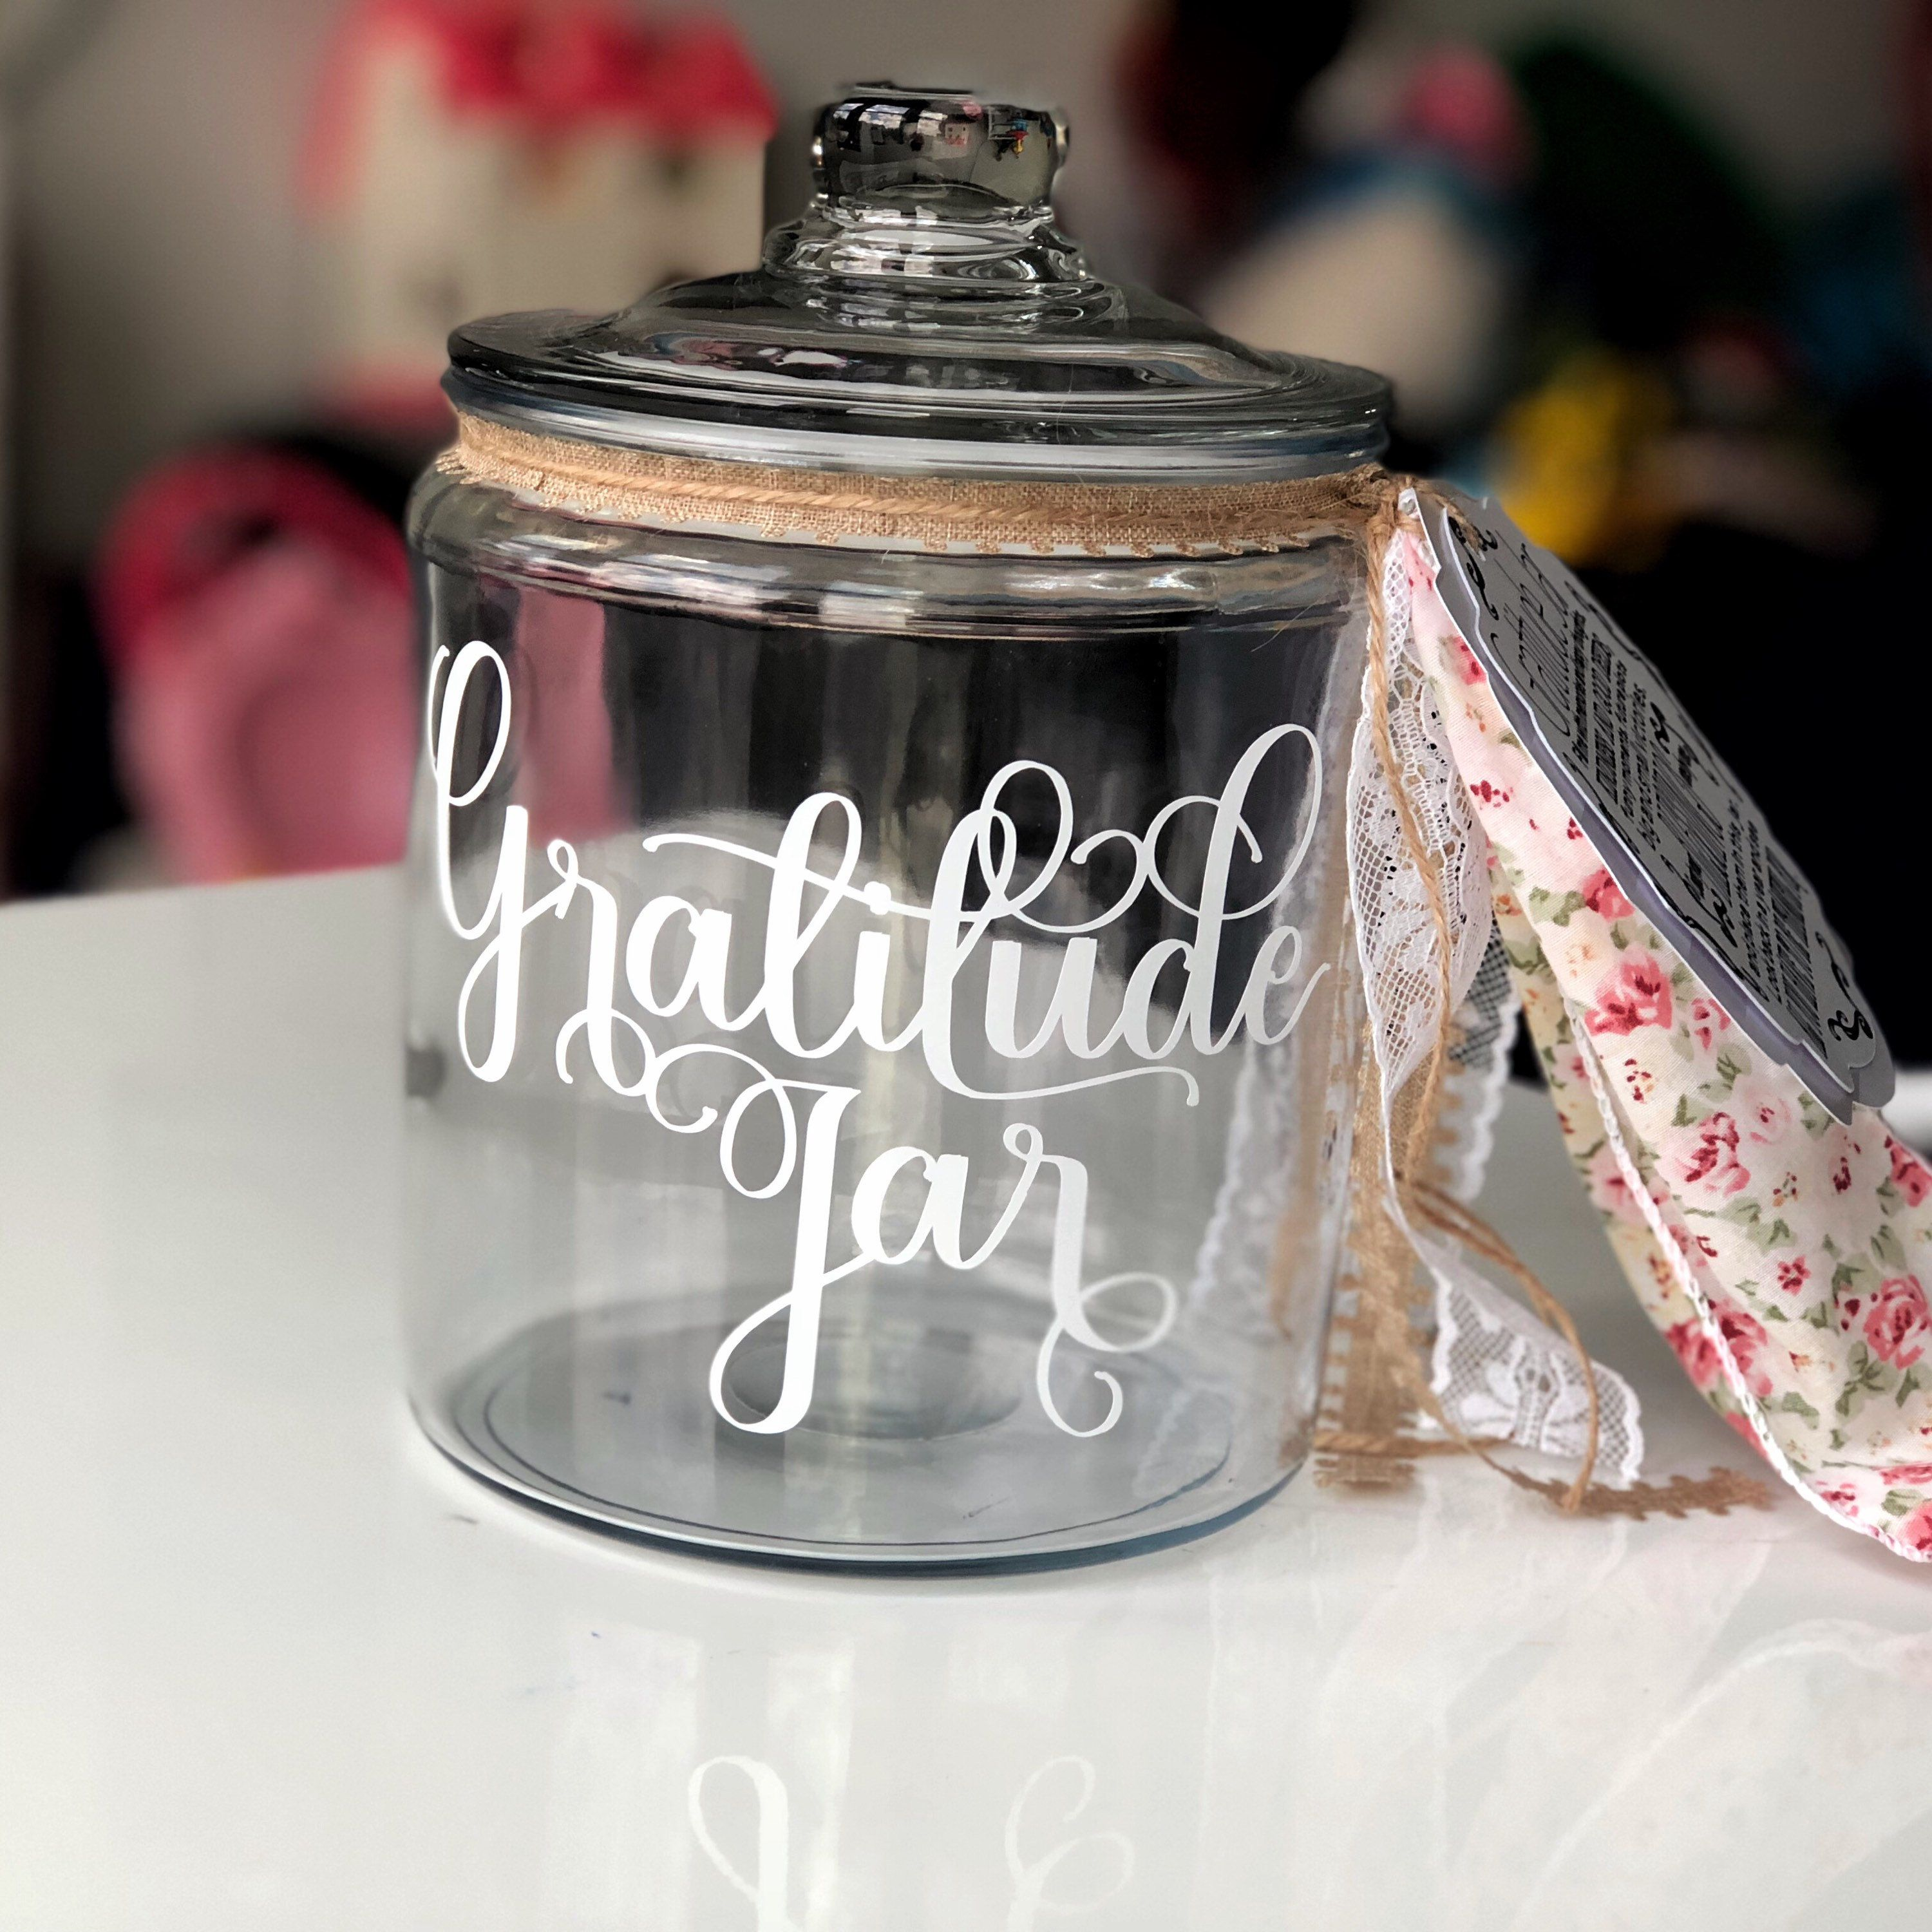 Gratitude Jar Gratitude Jar Kit Gratitude Journal Blessing Jar Blessings Journal Memory Jar Happiness Jar Gratitud Gratitude Jar Happy Jar Blessings Jar